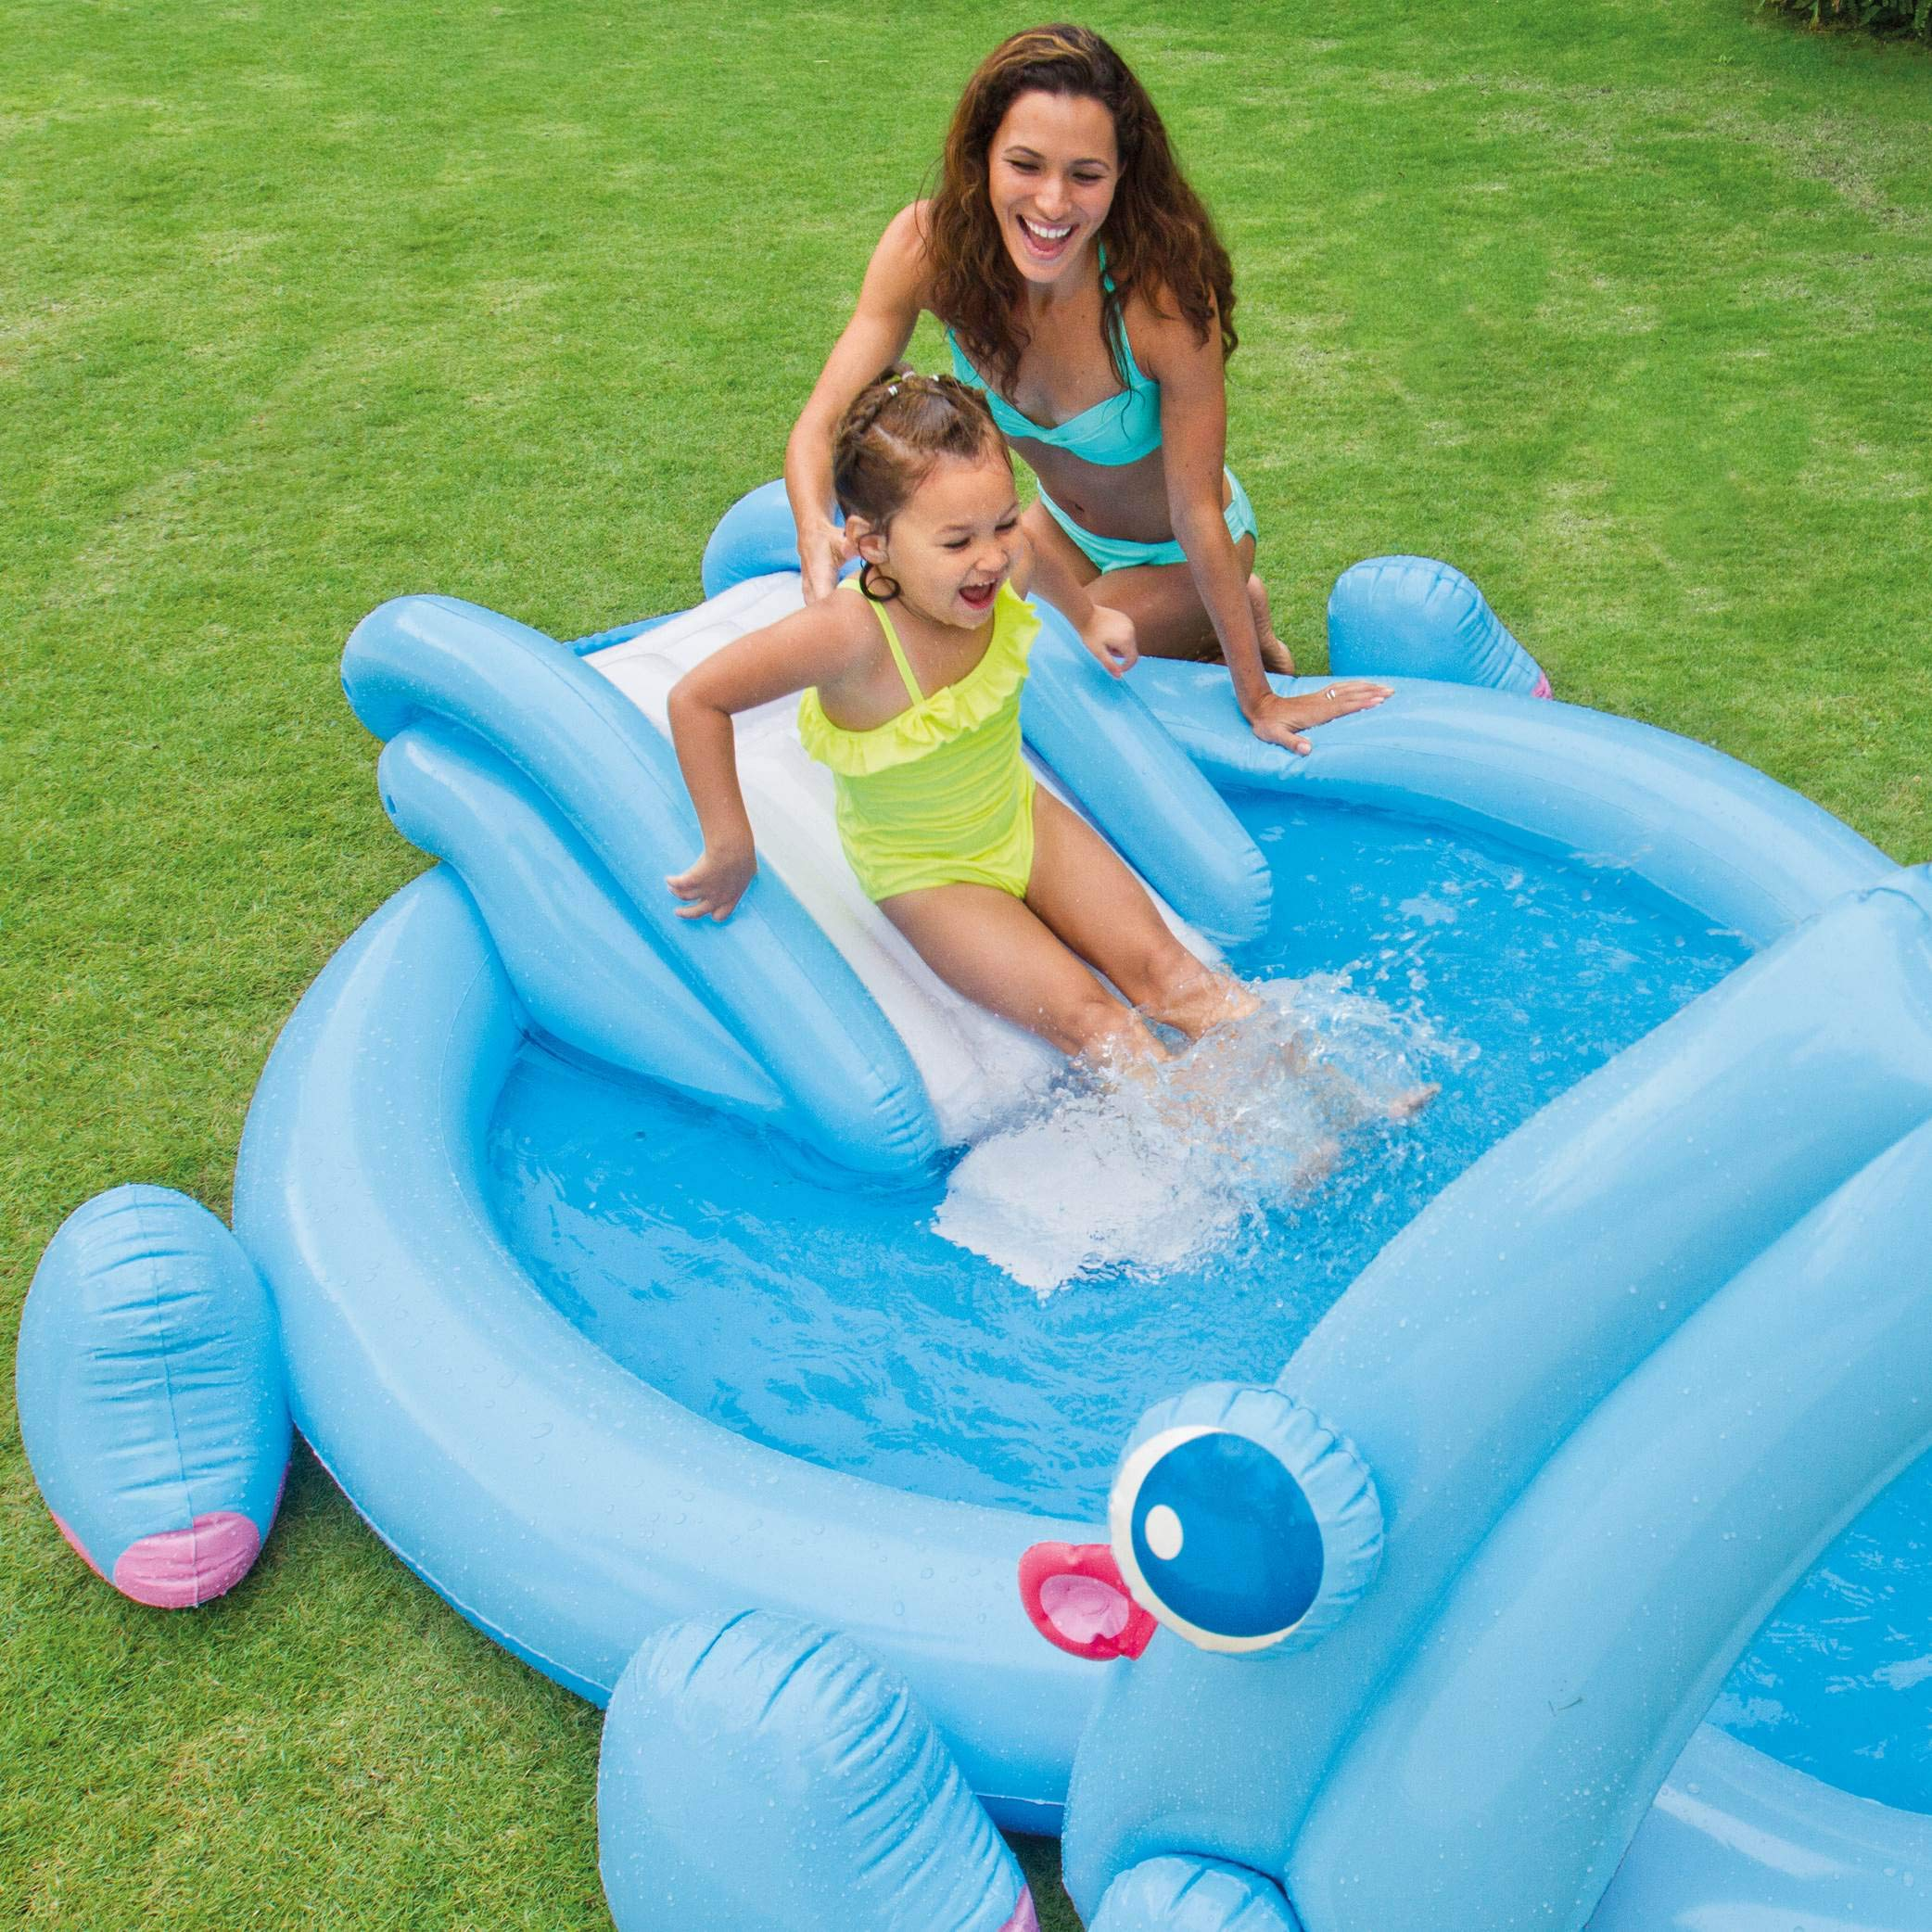 for Ages 2+ 87 x 74 x 34 Intex Recreation Group Import 57150EP Intex Hippo Play Center with Built-in Slide 87 x 74 x 34